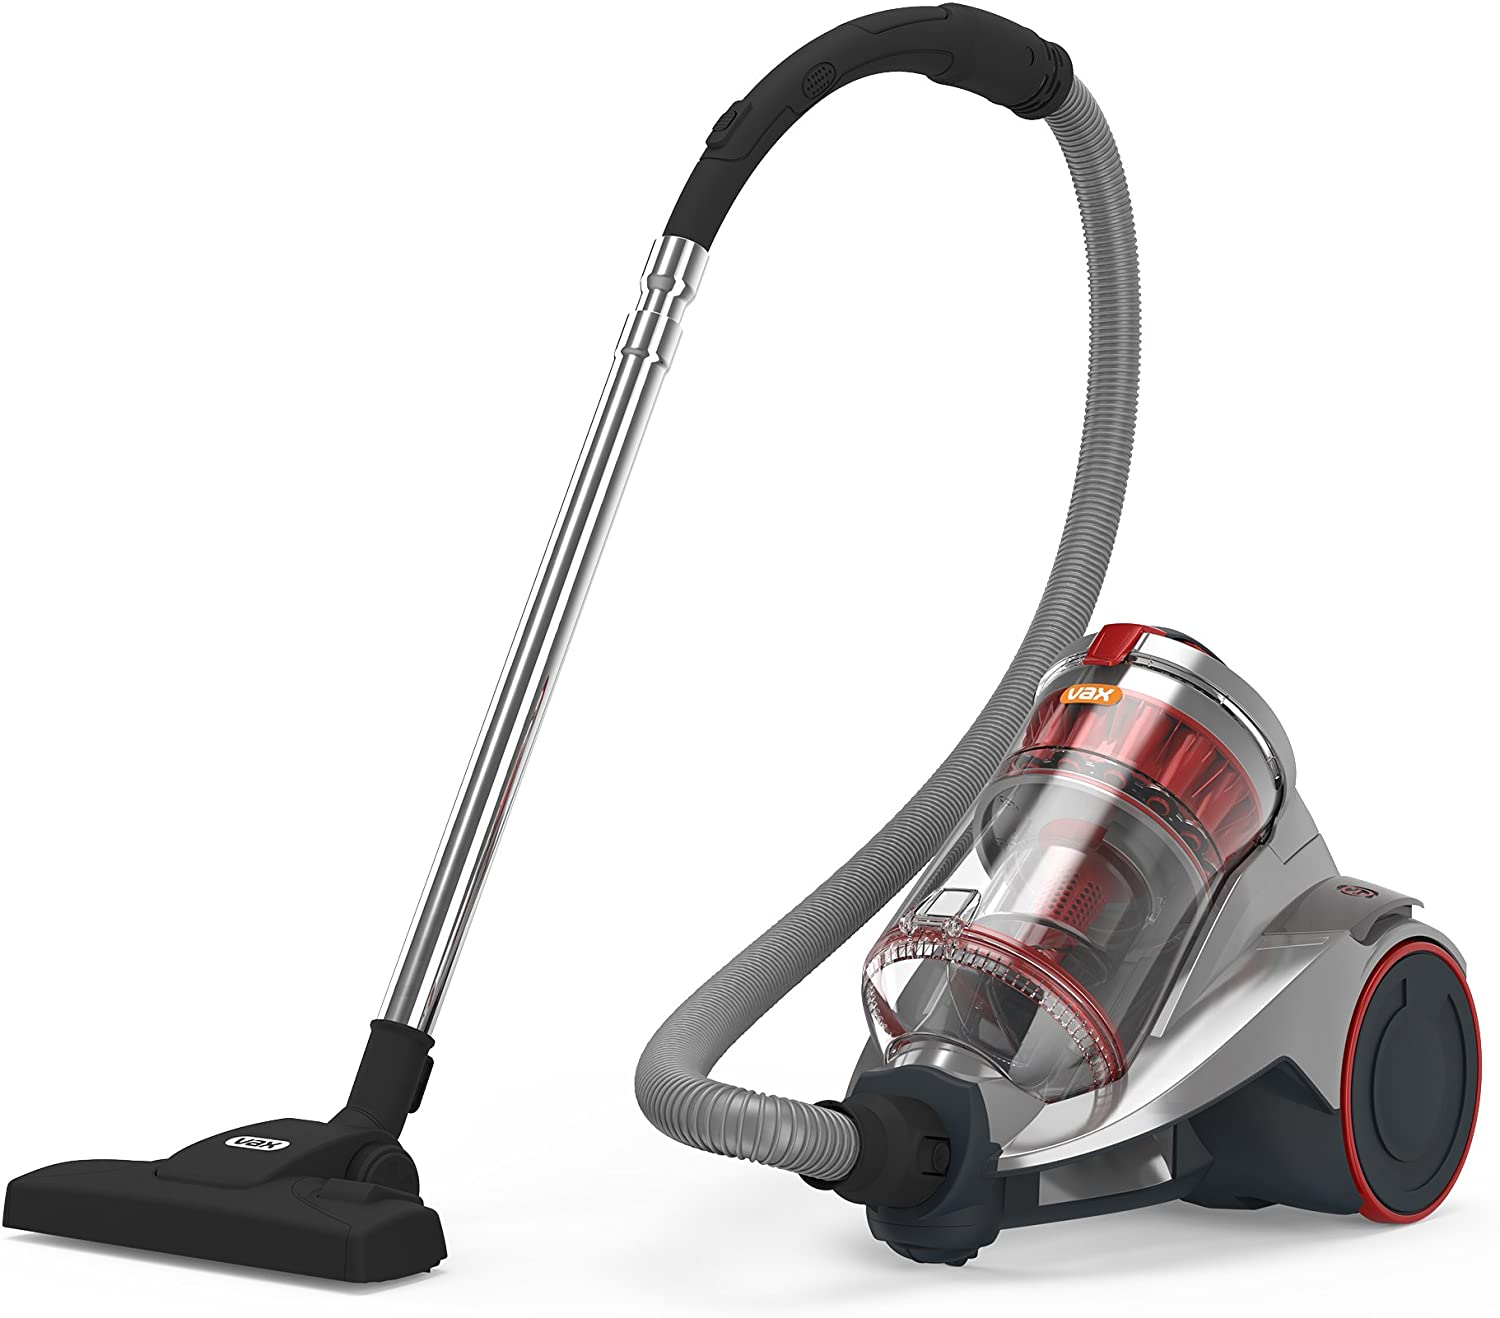 800 W 2.5 Litre Vax Cylinder Vacuum Cleaner